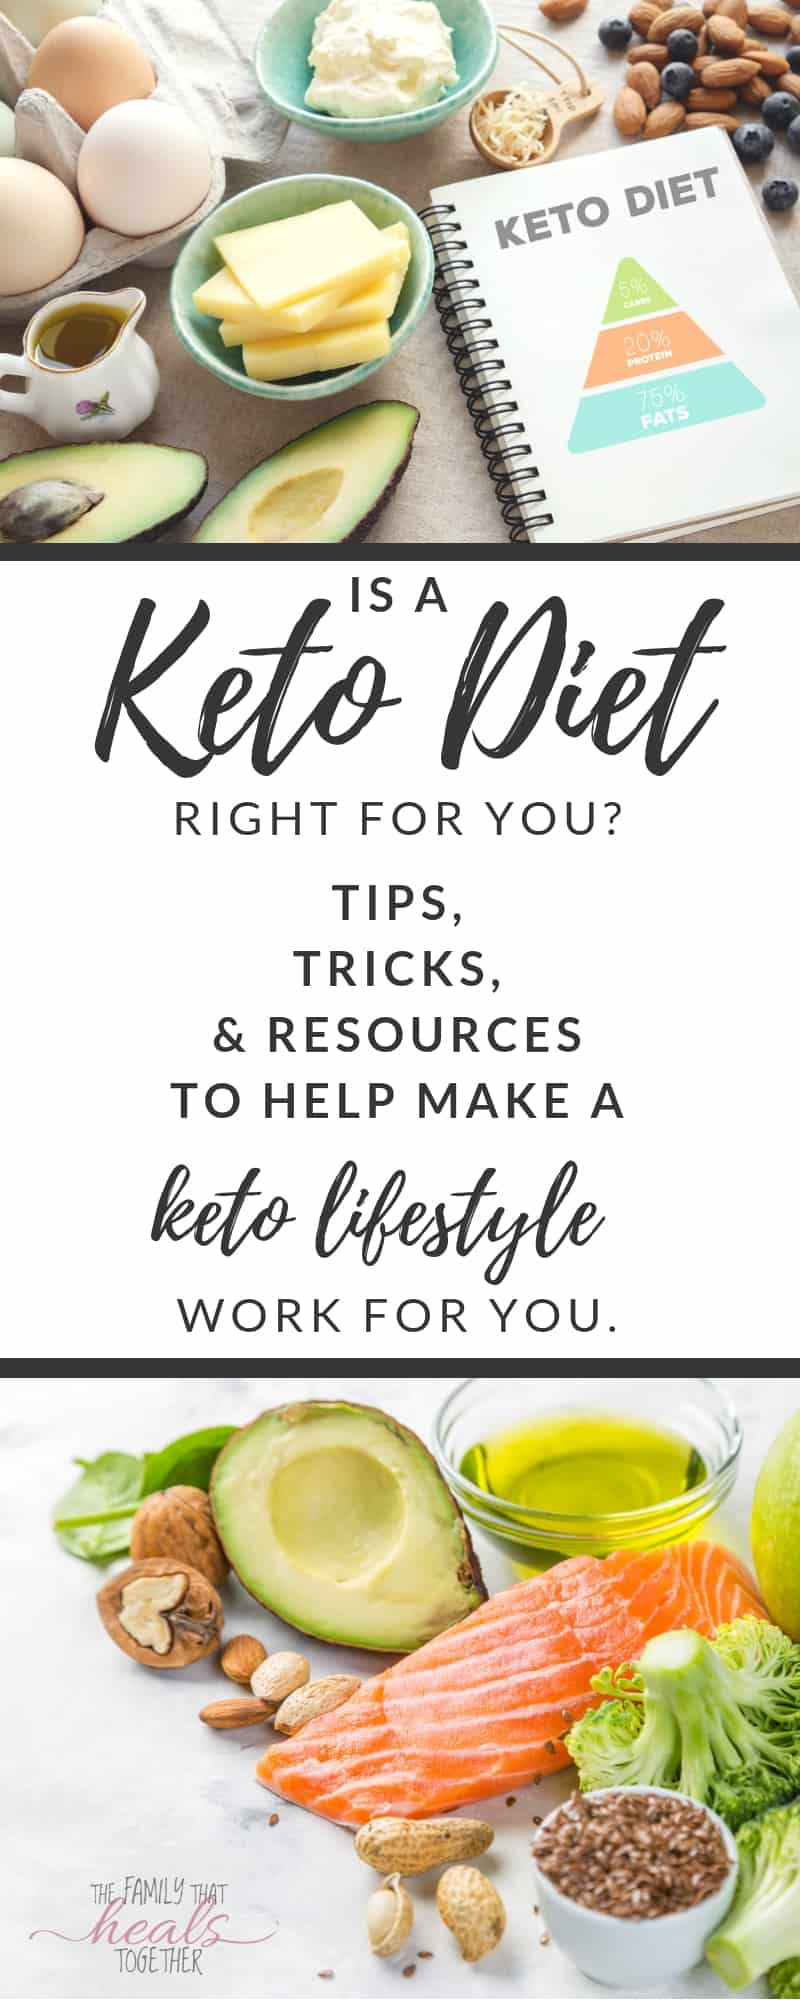 Is the keto diet right for you? These keto diet tips will help! Tricks, tips, and resources to help you with your keto diet lifestyle from The Family That Heals Together